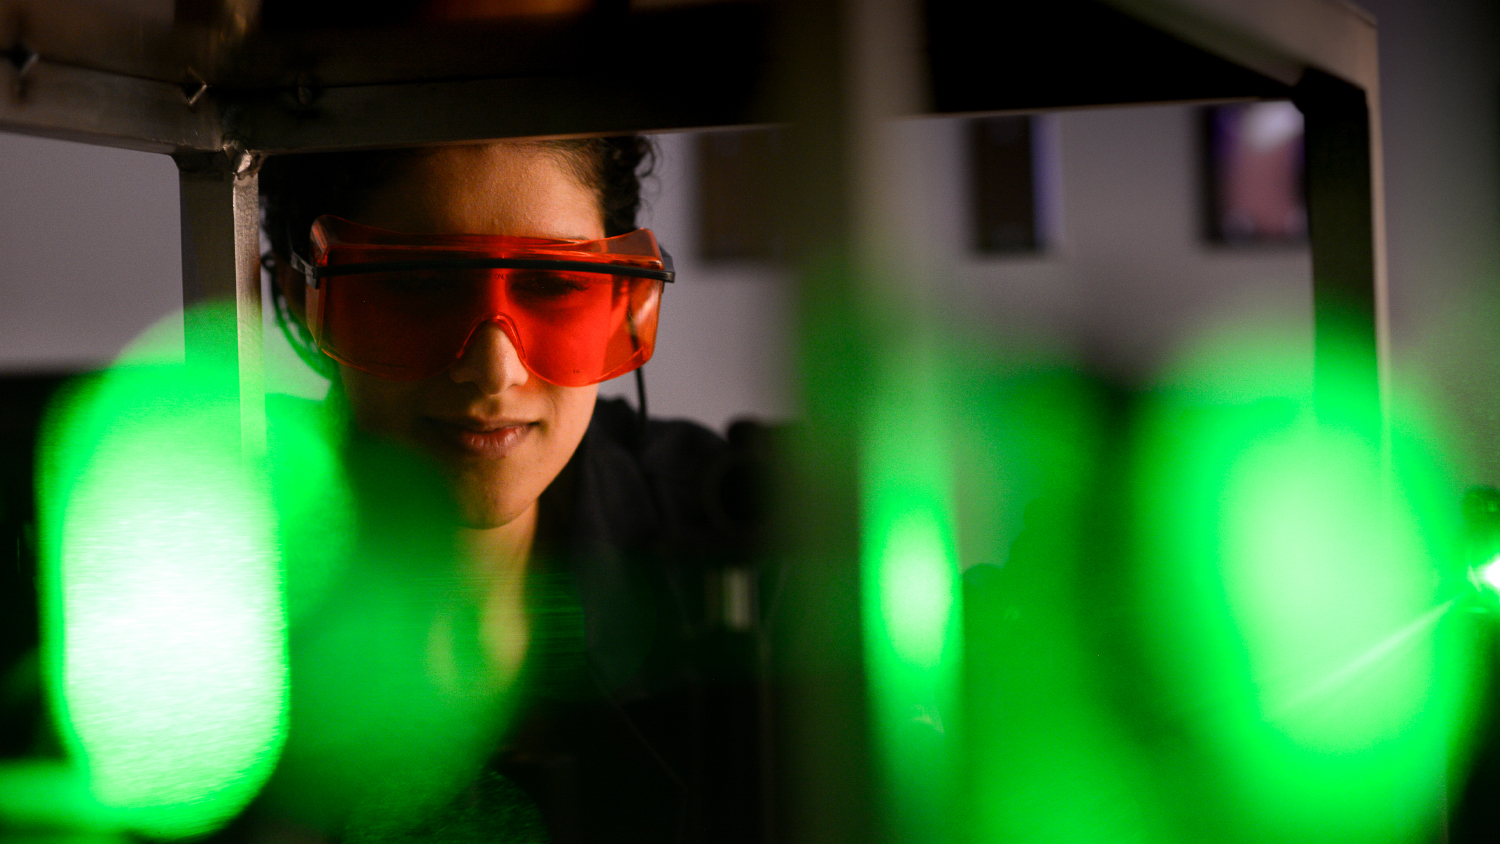 A researcher studies lasers.